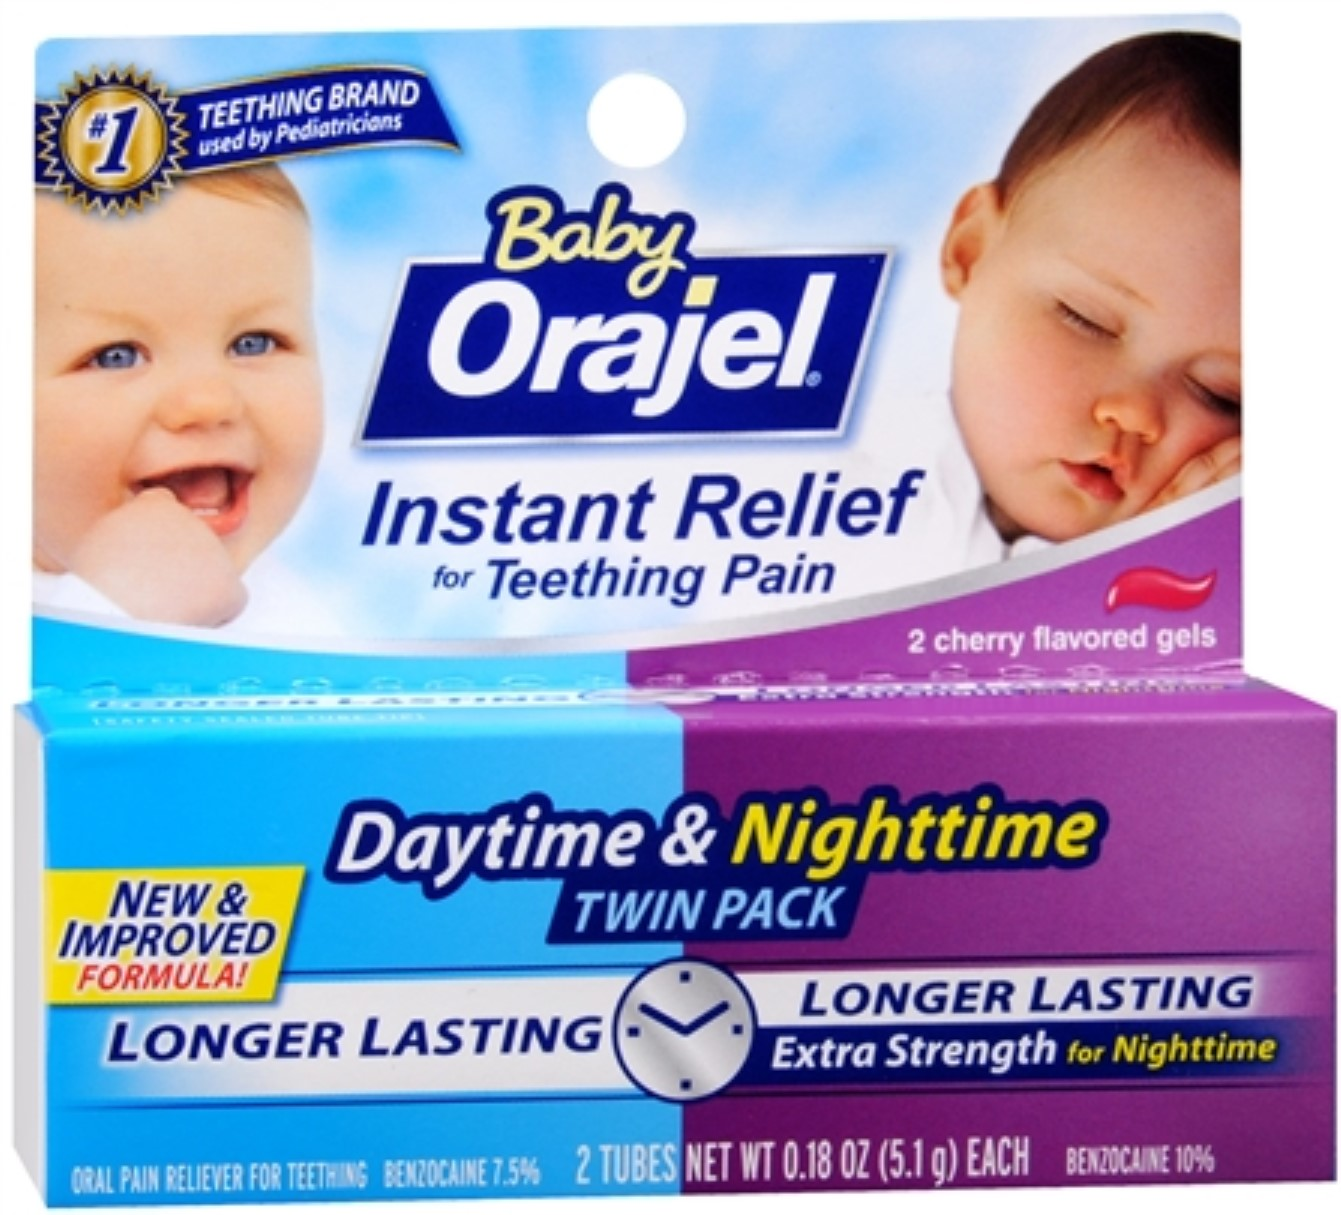 Baby Orajel Daytime & Nighttime Fast Teething Pain Relief 0.36 oz (Pack of 2)